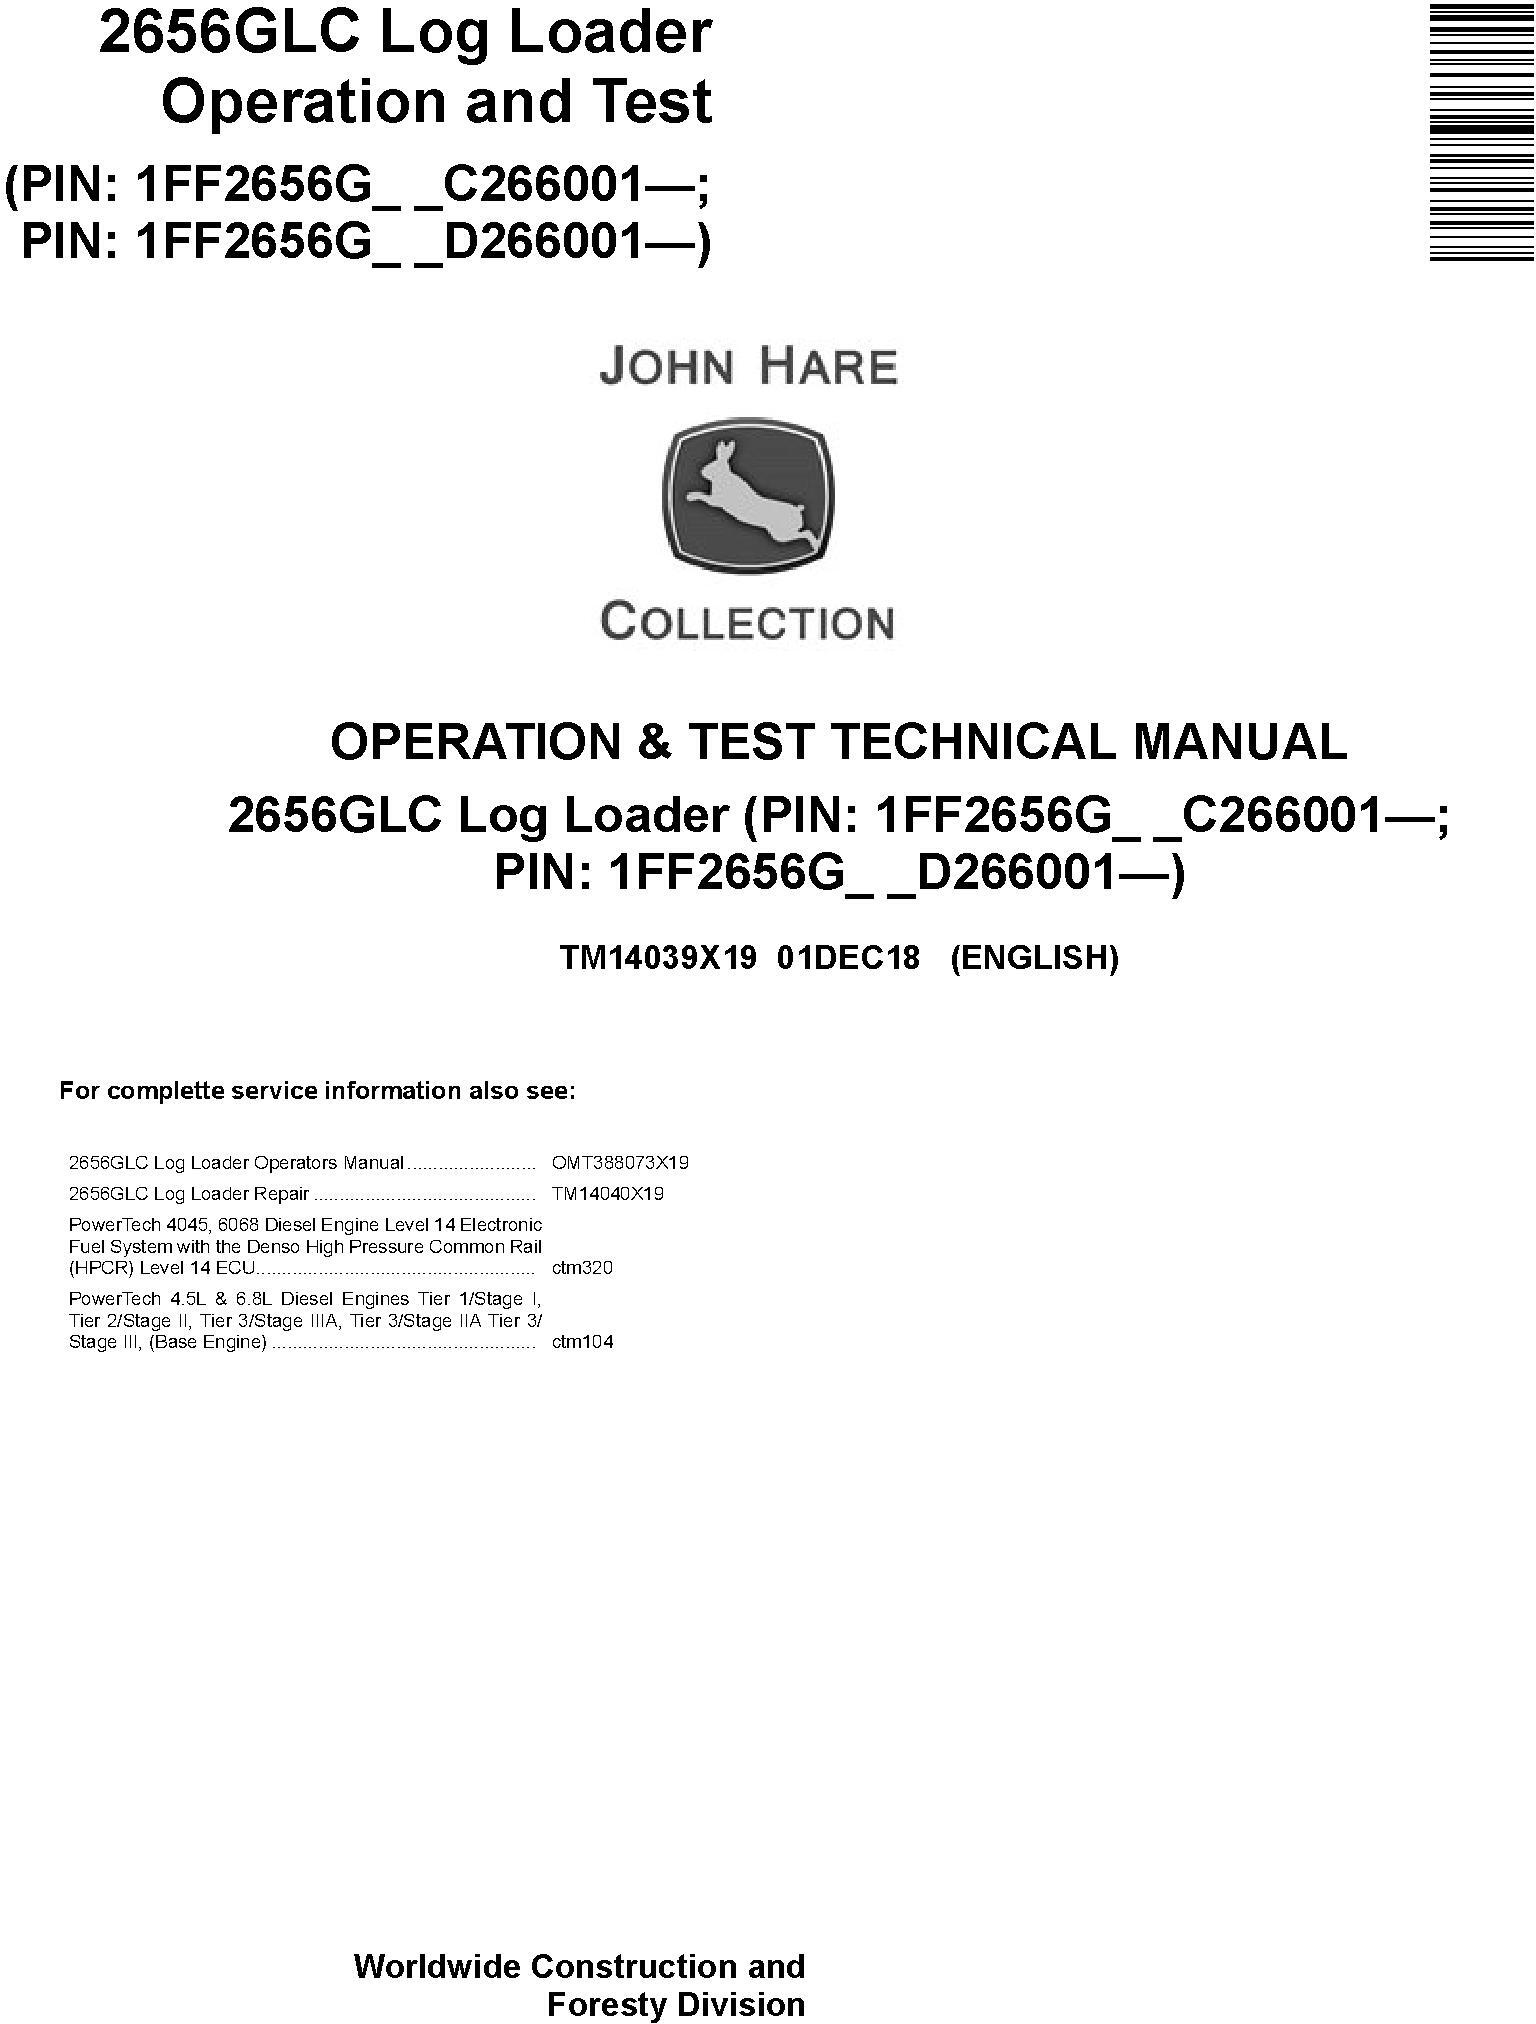 John Deere 2656GLC (SN. C266001-, D266001) Log Loader Operation & Test Technical Manual (TM14039X19) - 19208